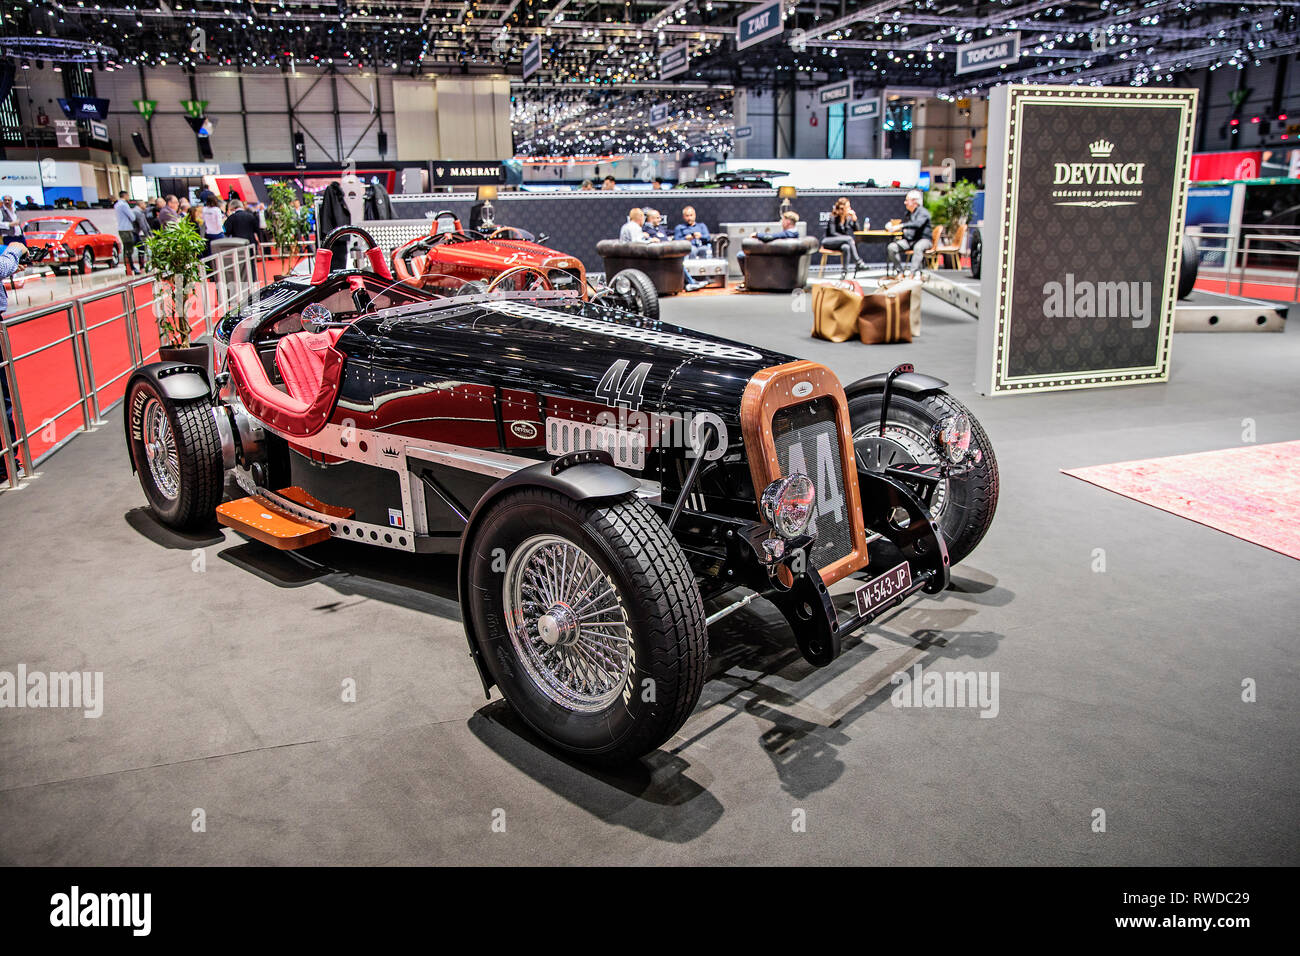 Devinci  oldtimers presented during the 2019 Geneva International Motor Show on Tuesday, March 5th, 2019. (CTK Photo/Josef Horazny) - Stock Image